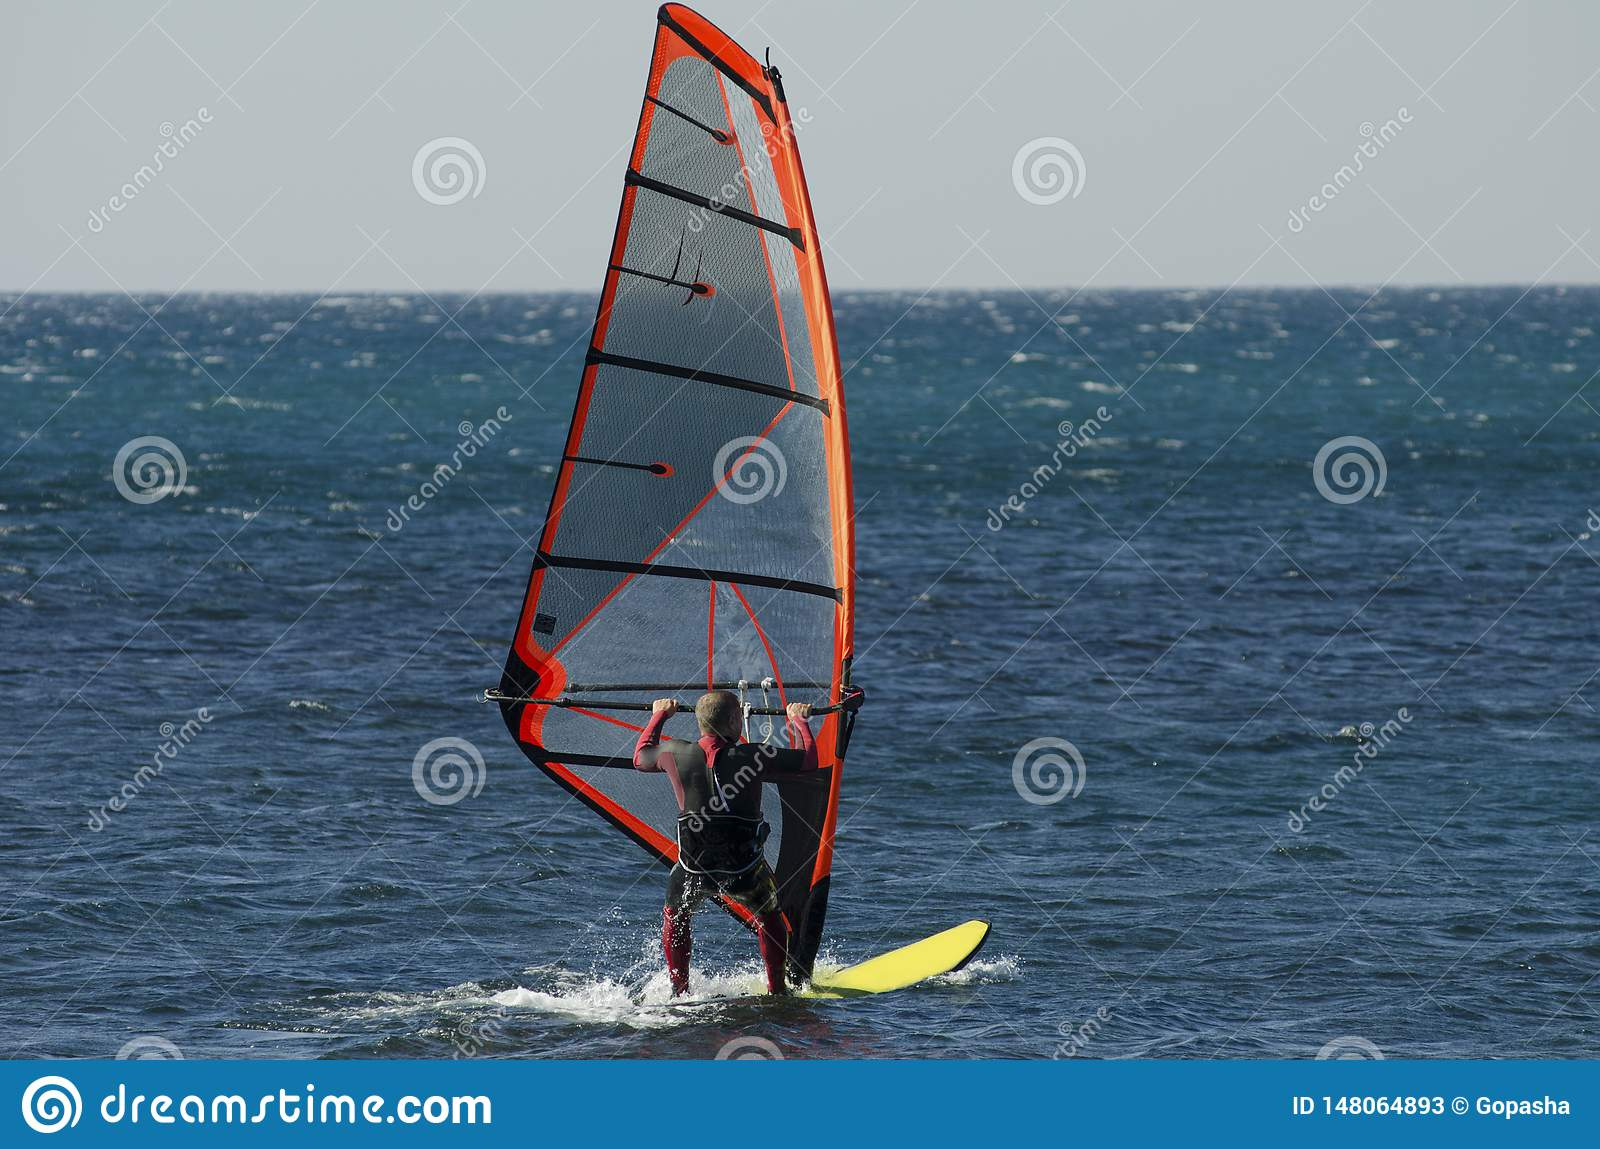 Windsurfing. A windsurfer rides on the sea in calm, light wind.